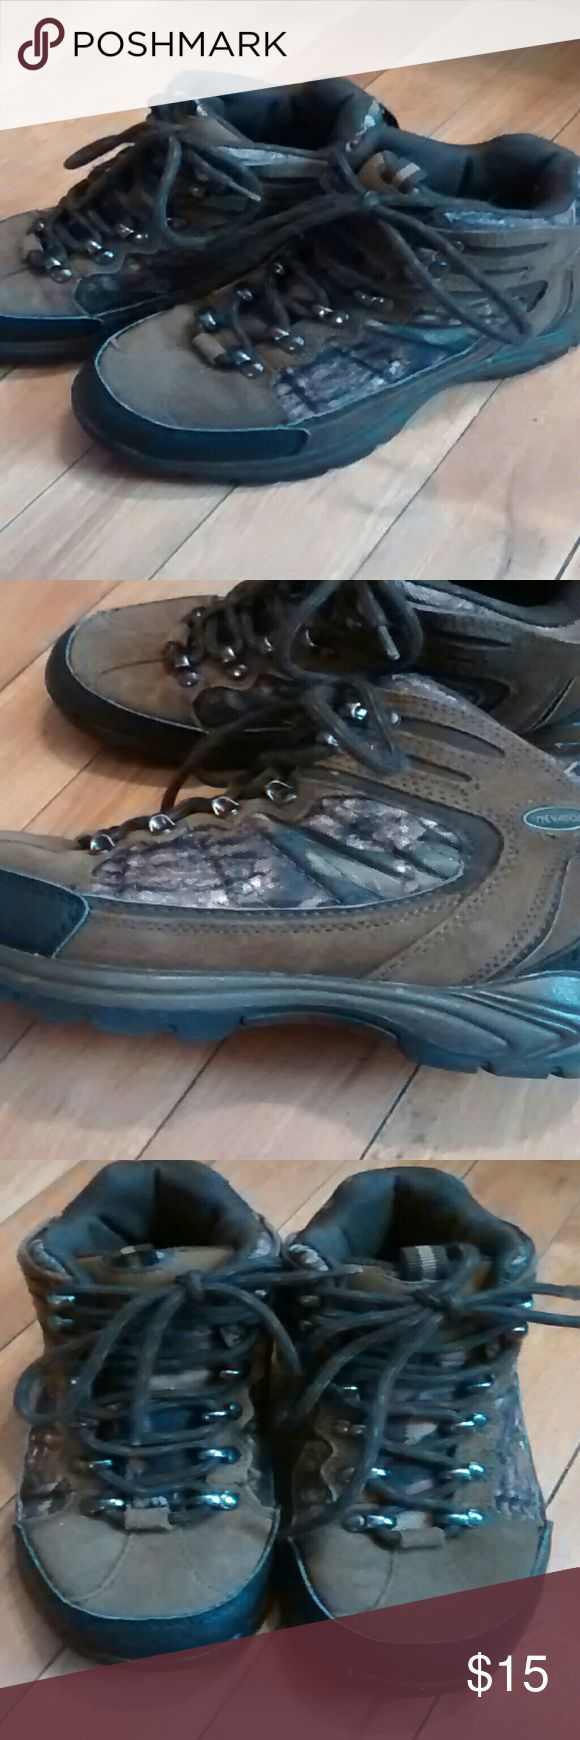 Boys hiking boots These are in excellent condition, he outgrew them after only wearing them a few times. The tread on the bottom is like new and the laces are in great condition with no fraying or wear Nevados Shoes Boots